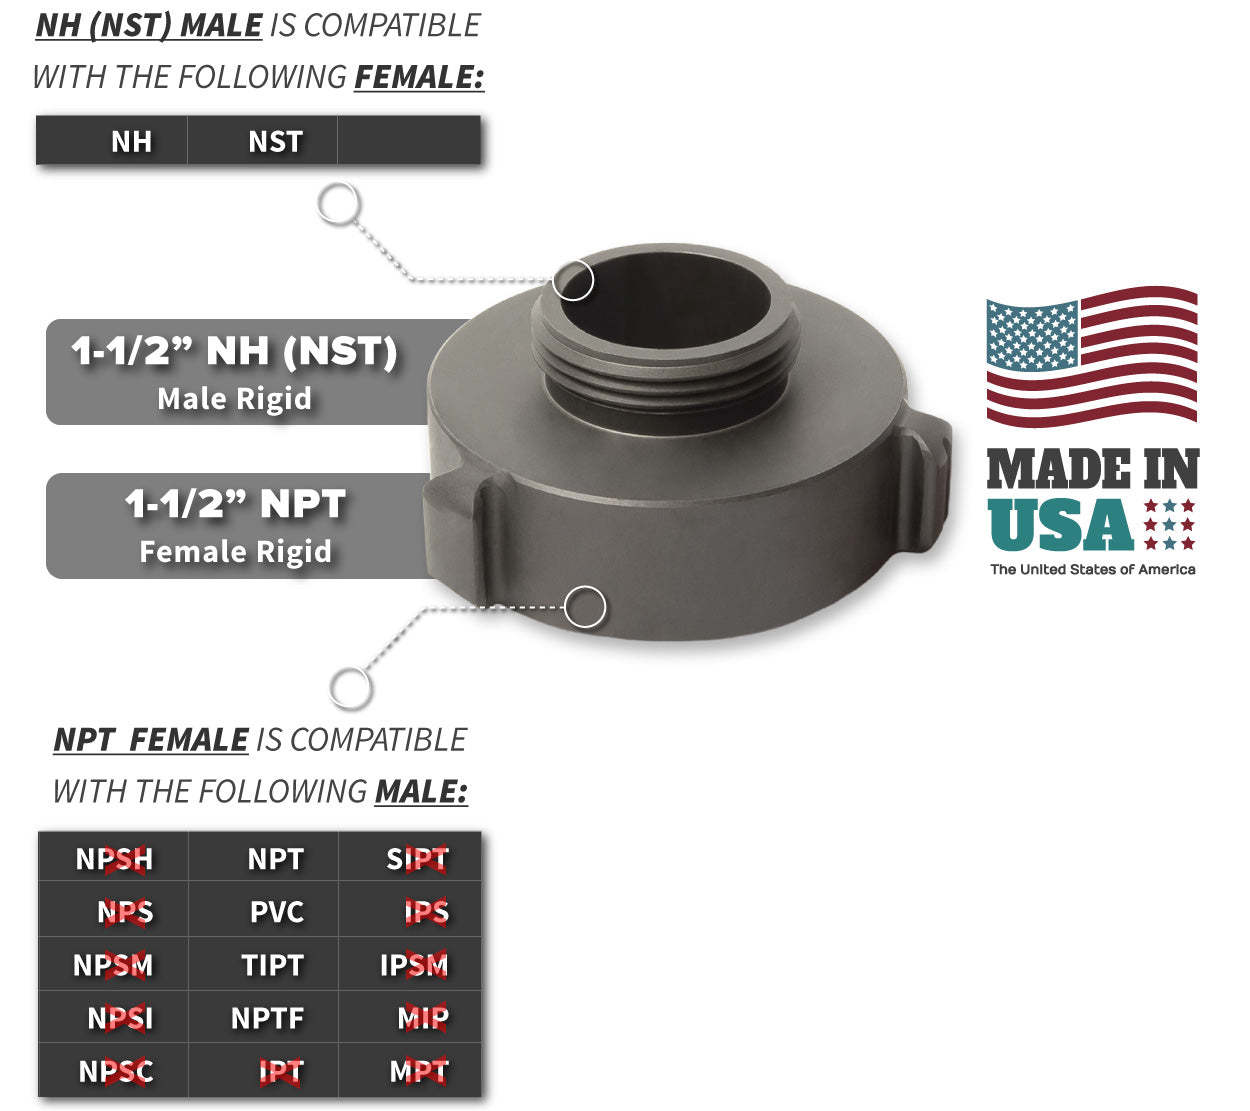 1.5 Inch NPT Female x 1.5 Inch NH-NST Male Compatibility Thread Chart